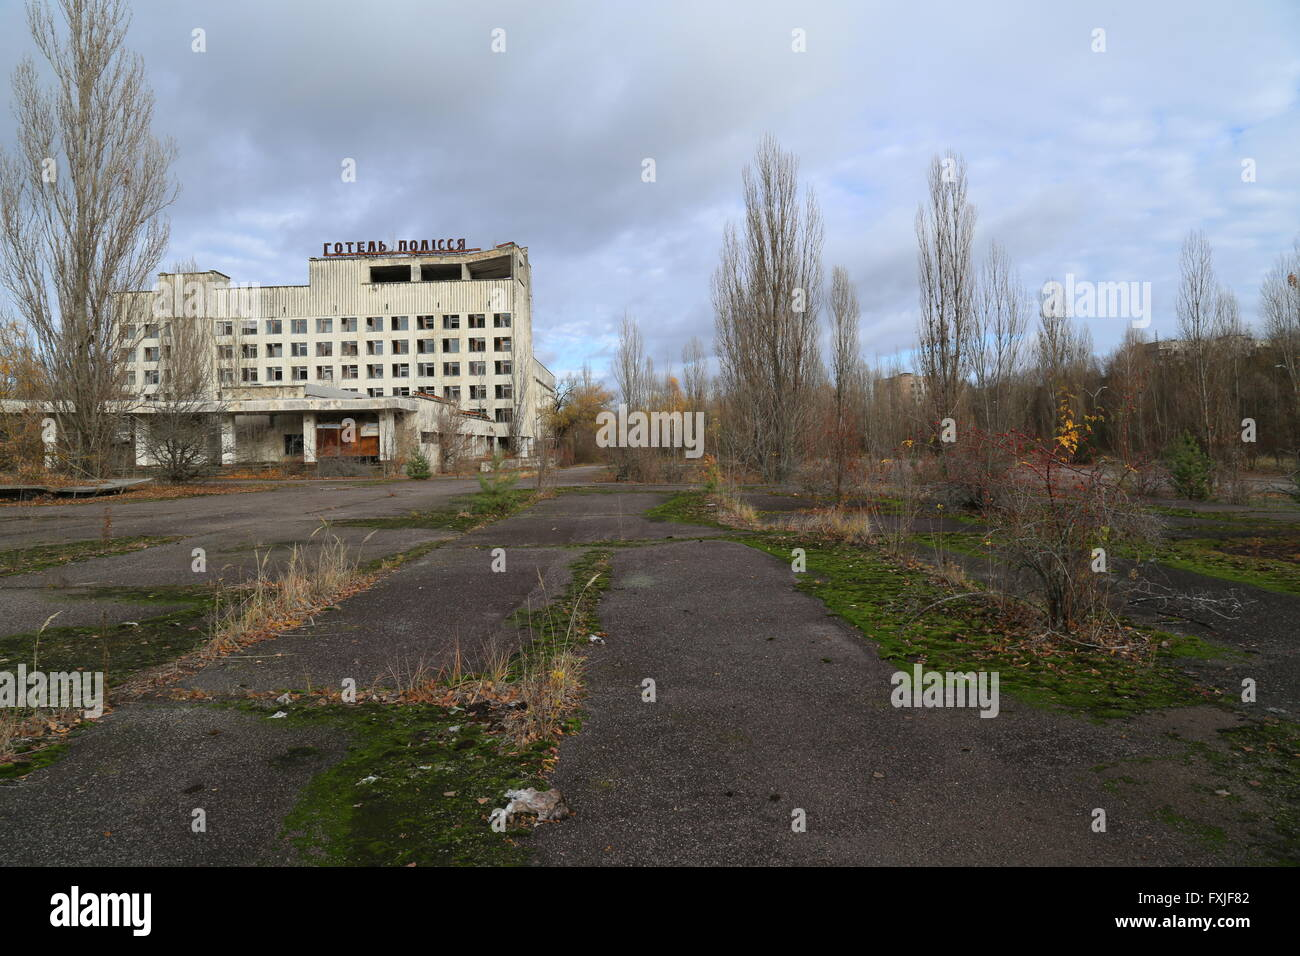 The abandoned city of Pripyat, Chernobyl Exclusion Zone, Ukraine - Stock Image